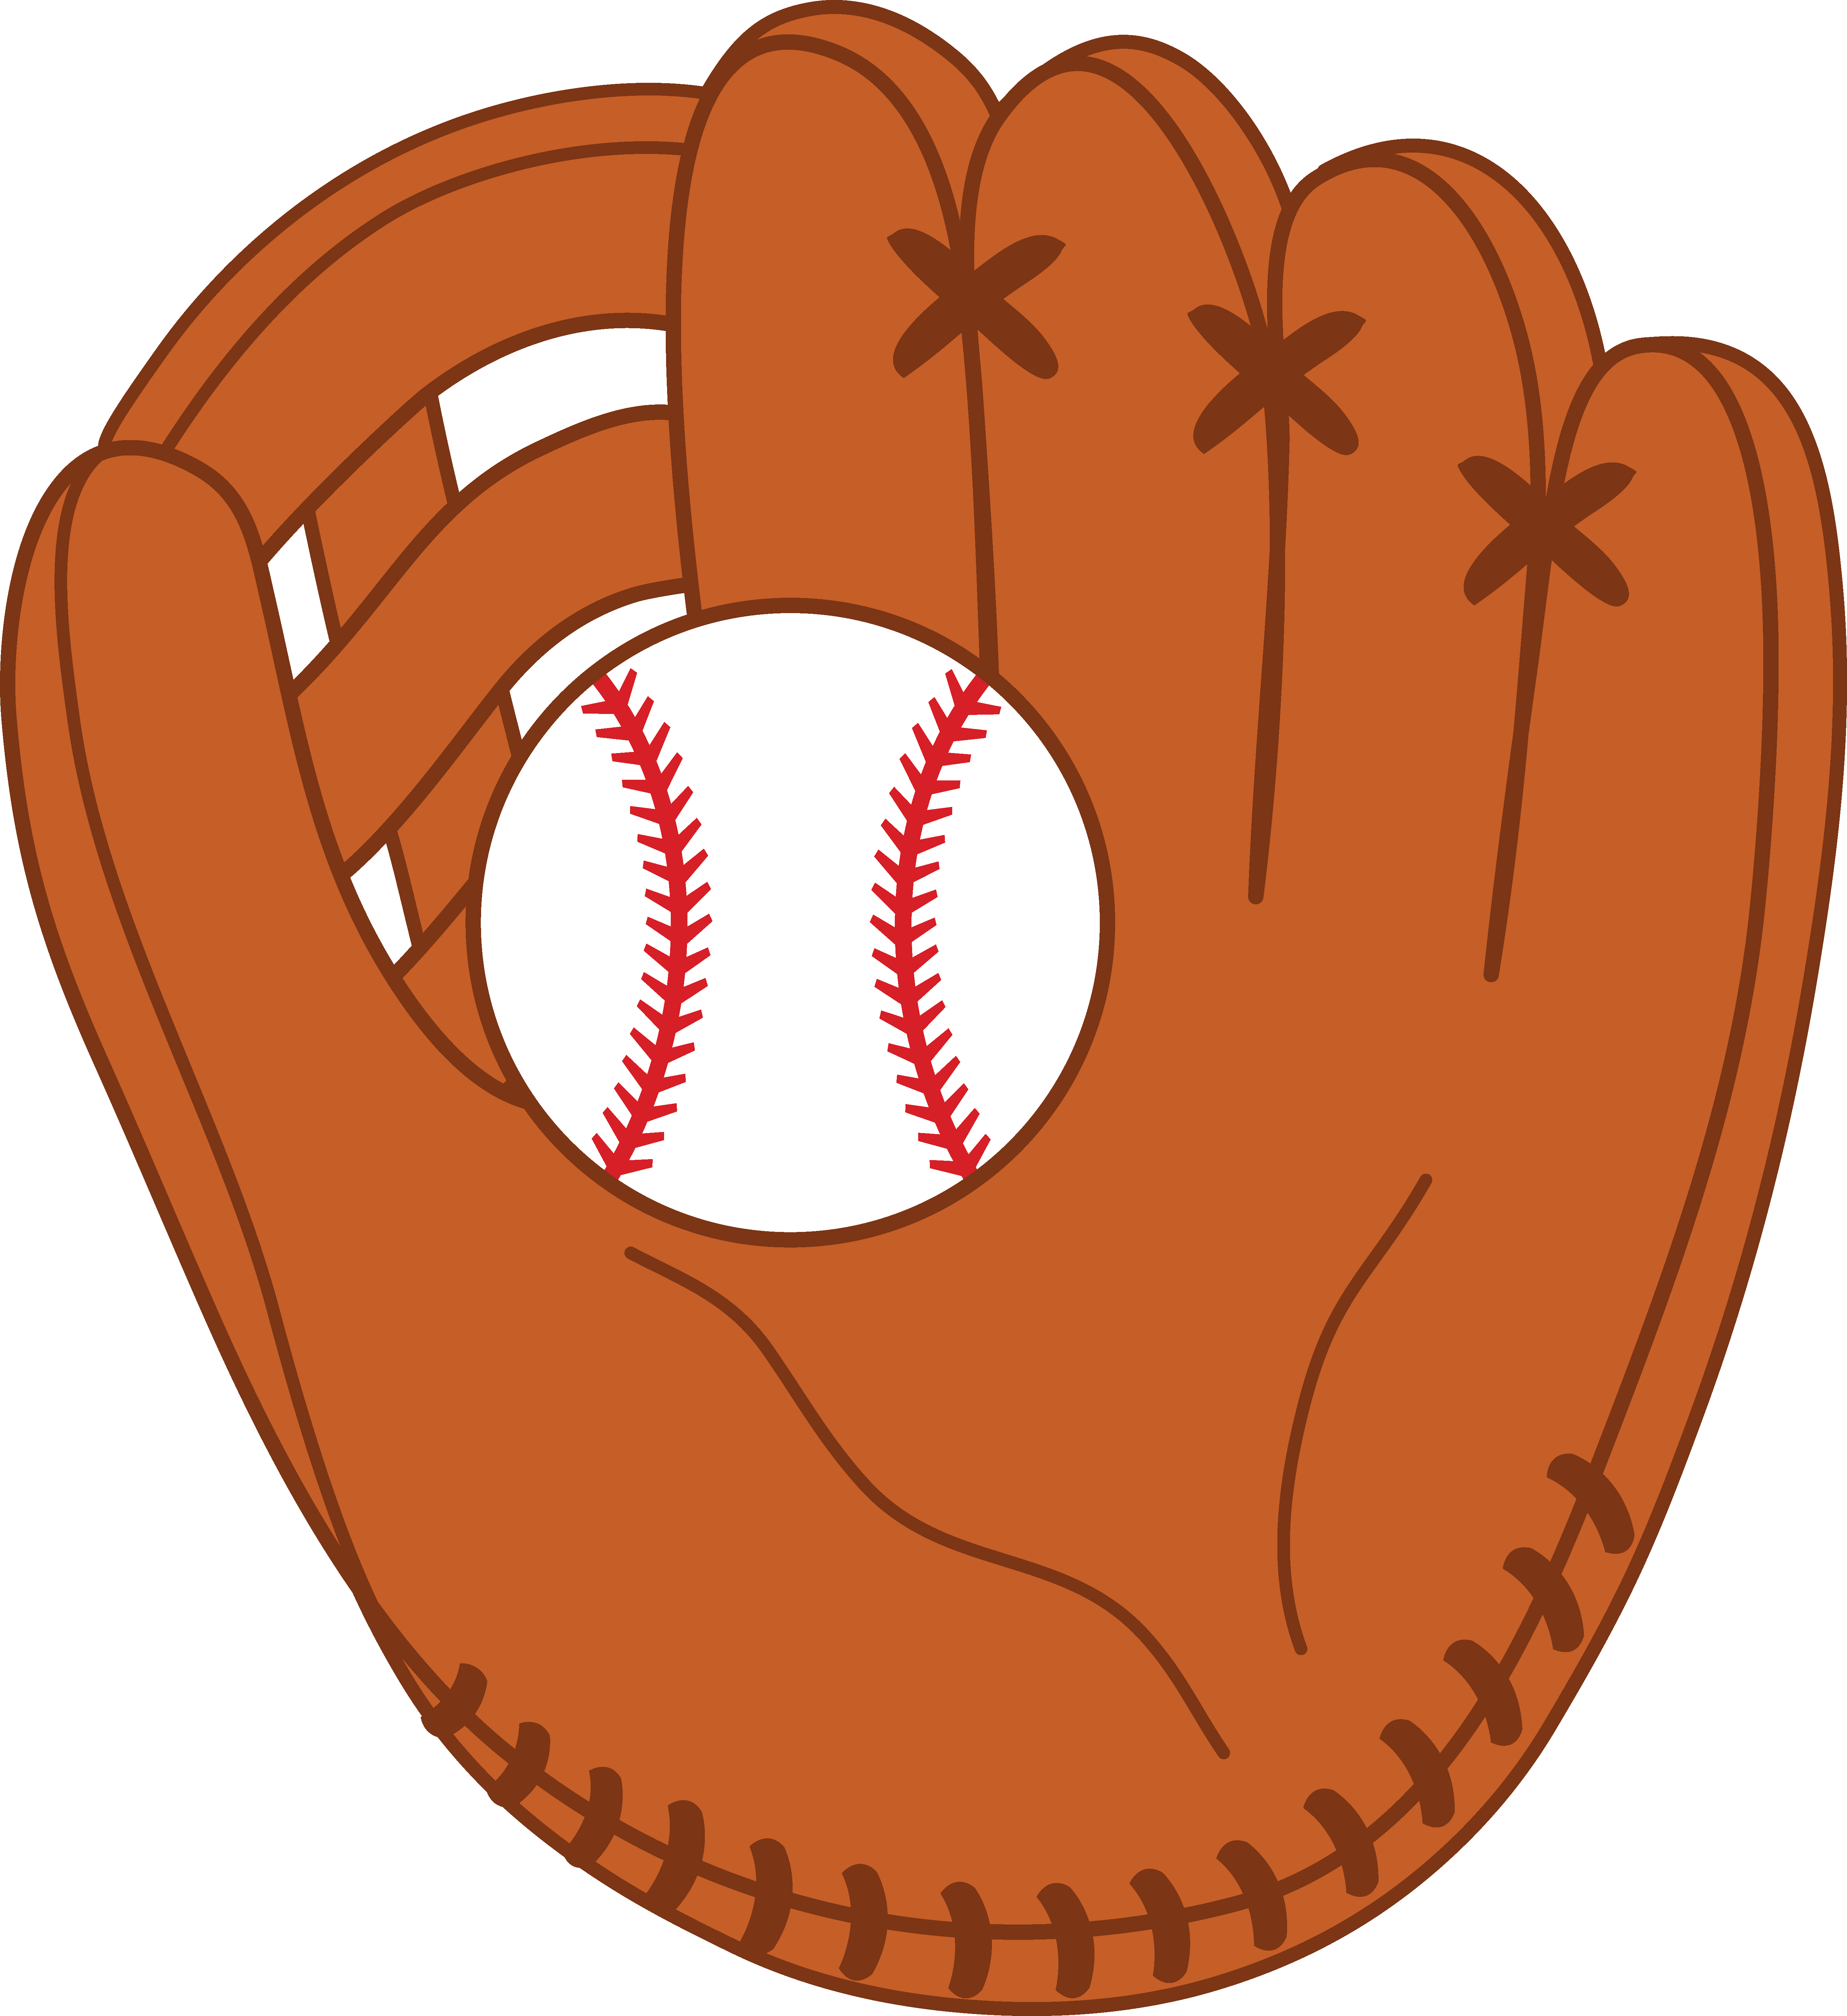 Bat clipart baseball mitt And 3 mitt glove and